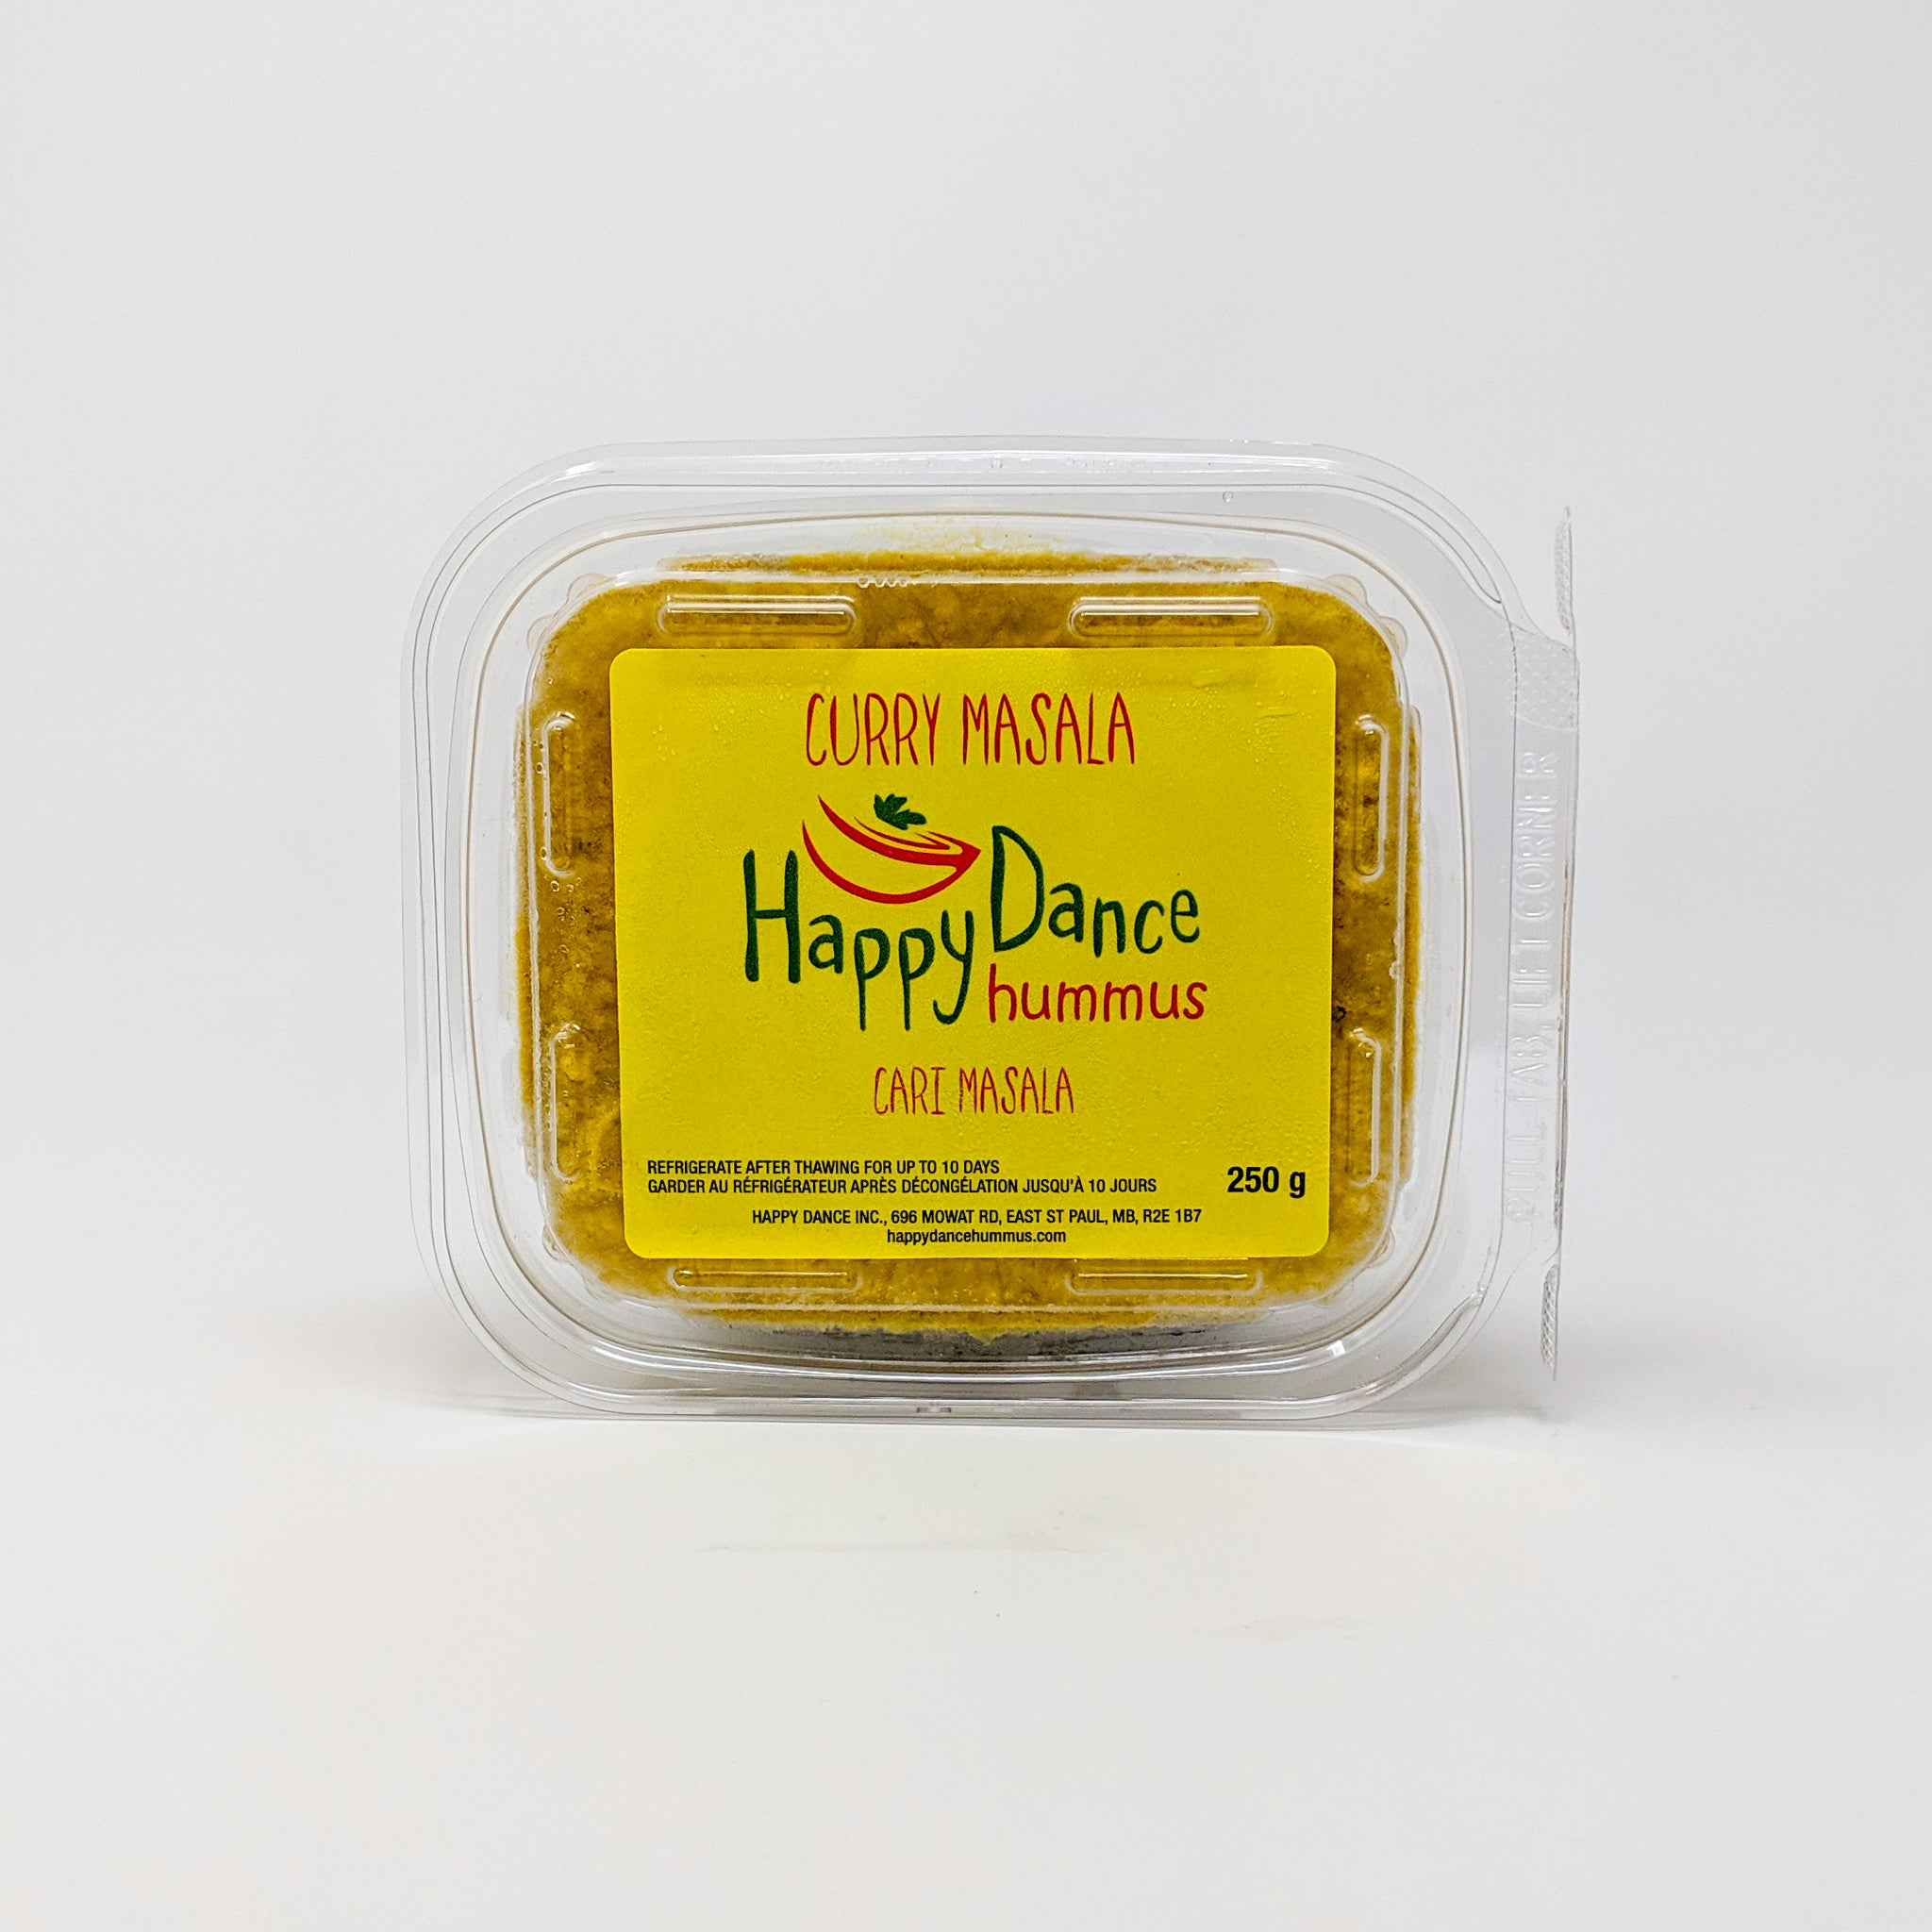 Curry Masala Hummus - Happy Dance Hummus - Frozen